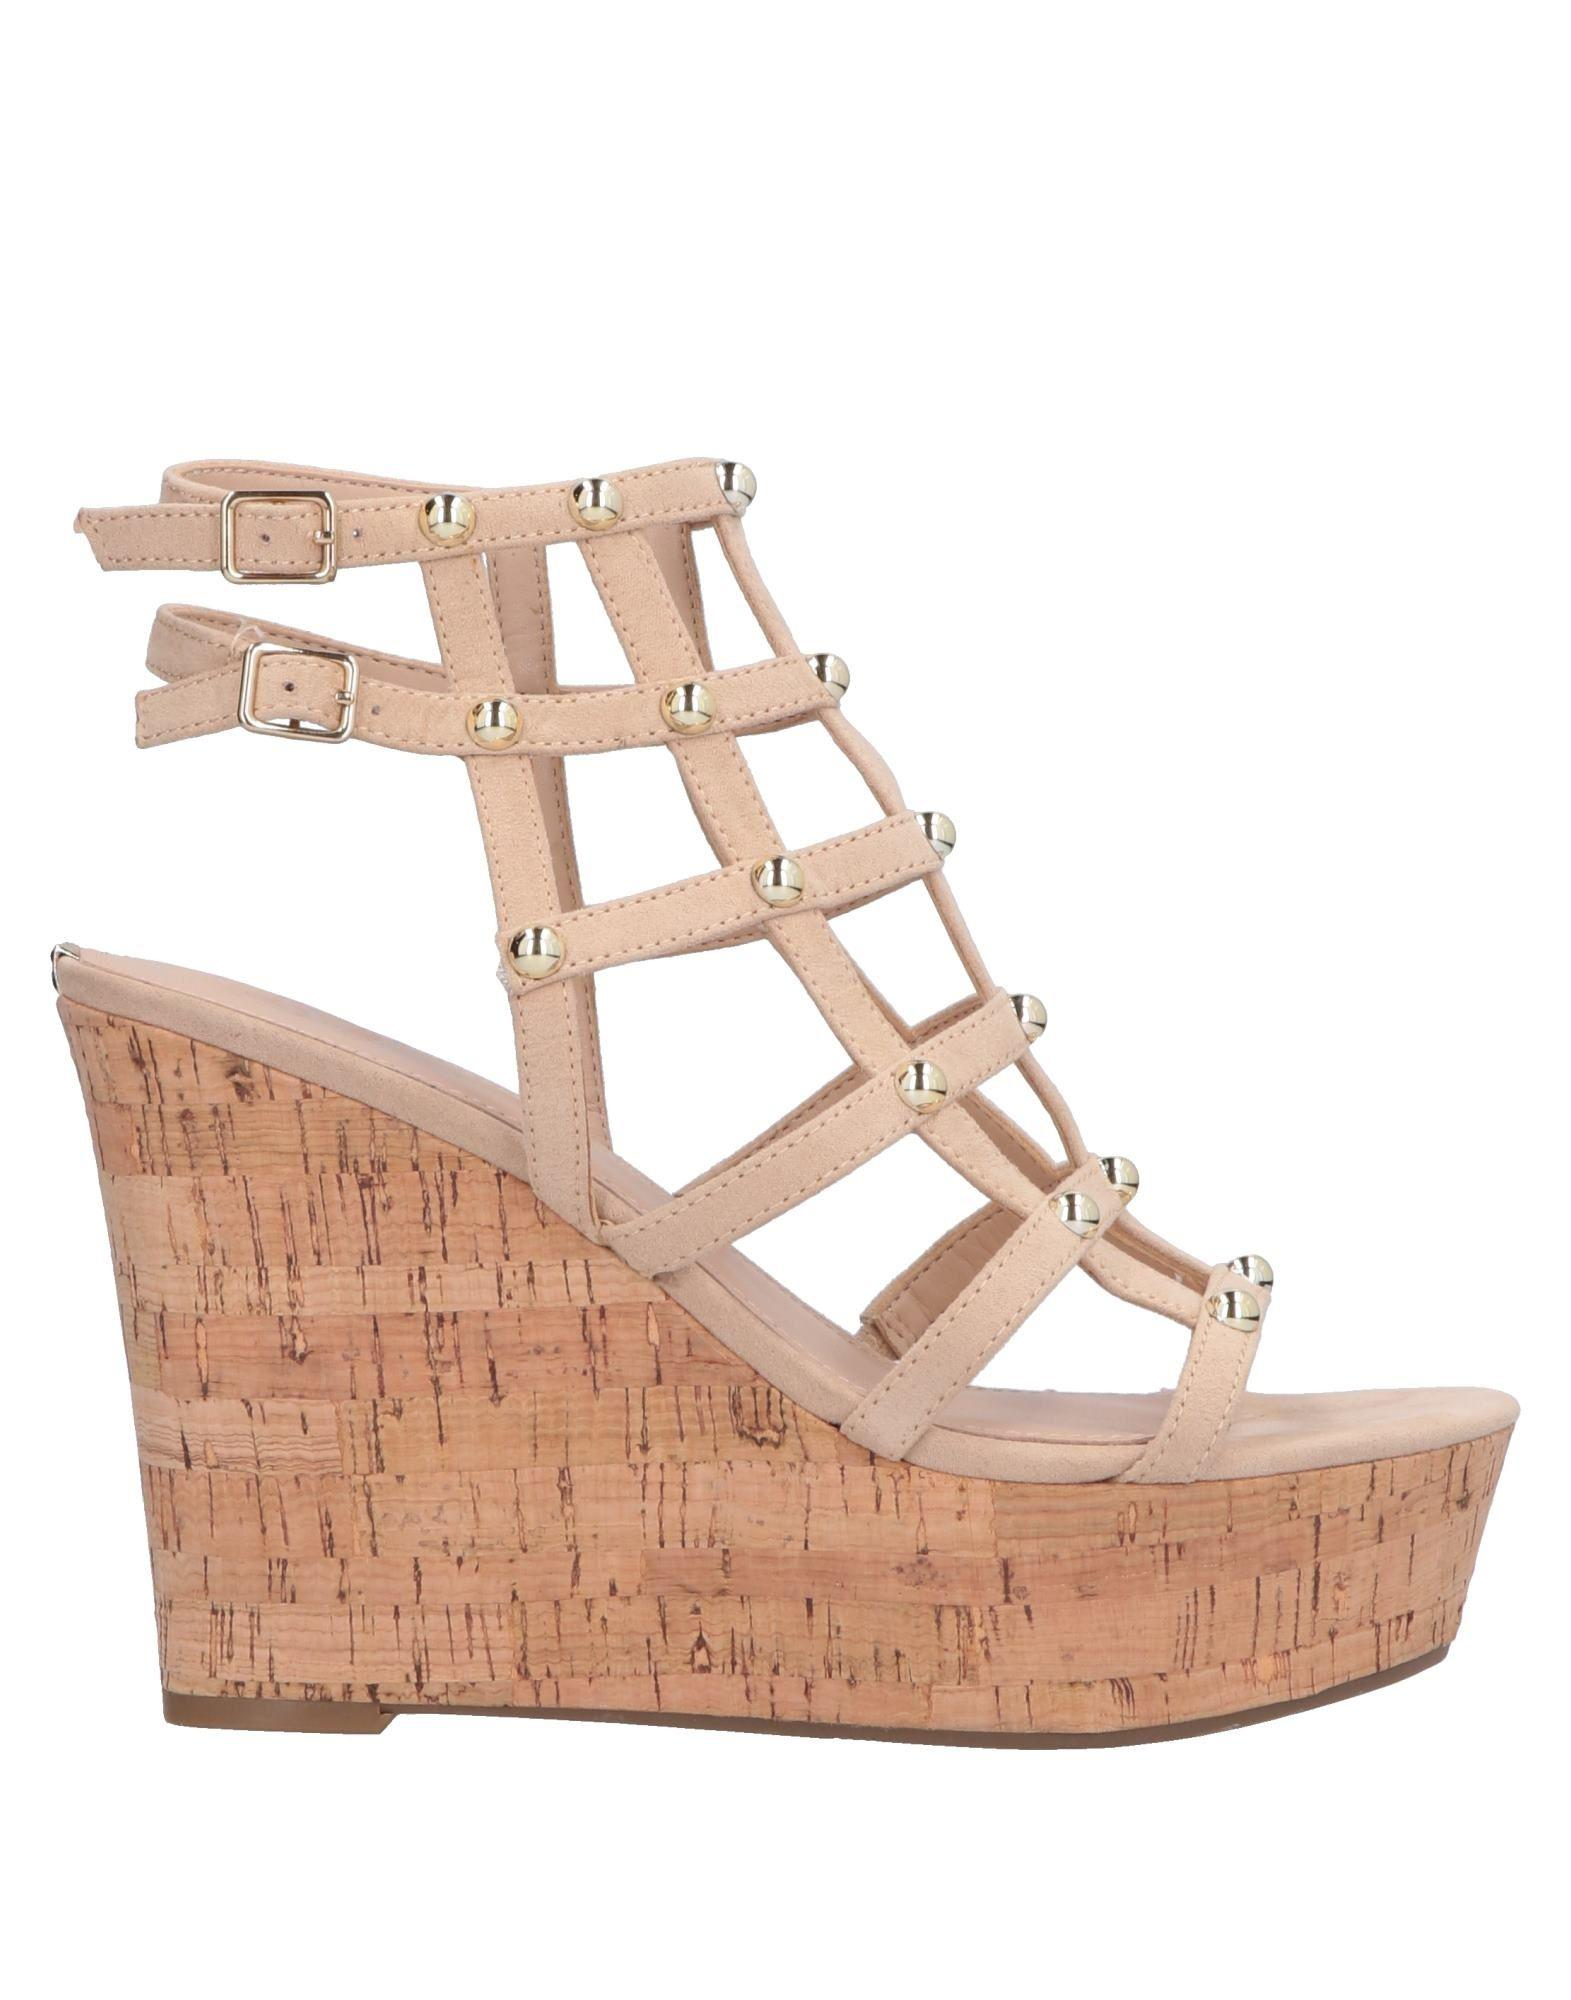 e627c6d8648177 Lyst - Guess Sandals in Natural